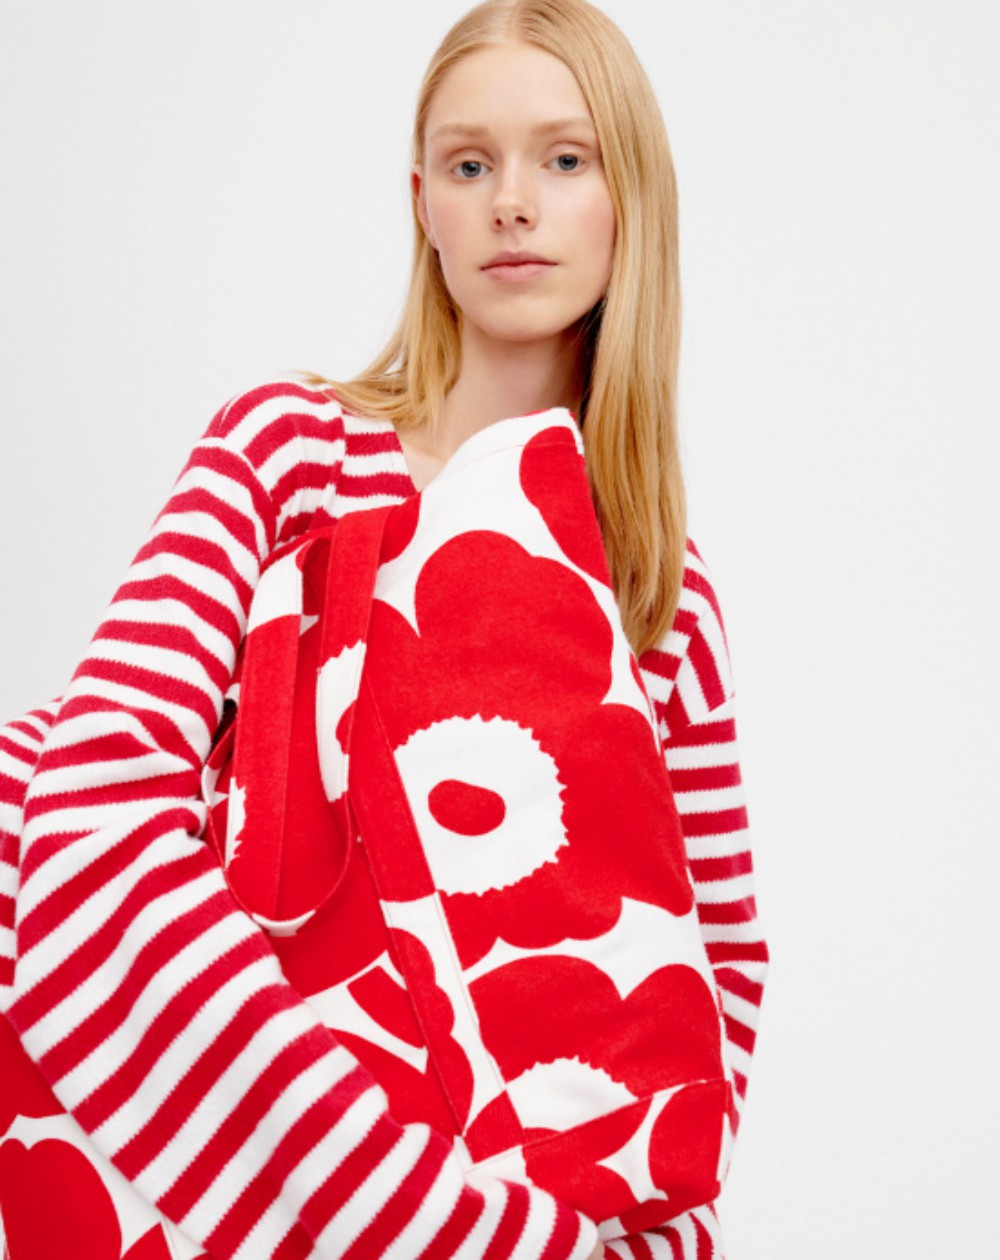 Finnish label Marimekko and material manufacturer Spinnova collaborated on sustainable fashion garments made with cellulosic fibers.